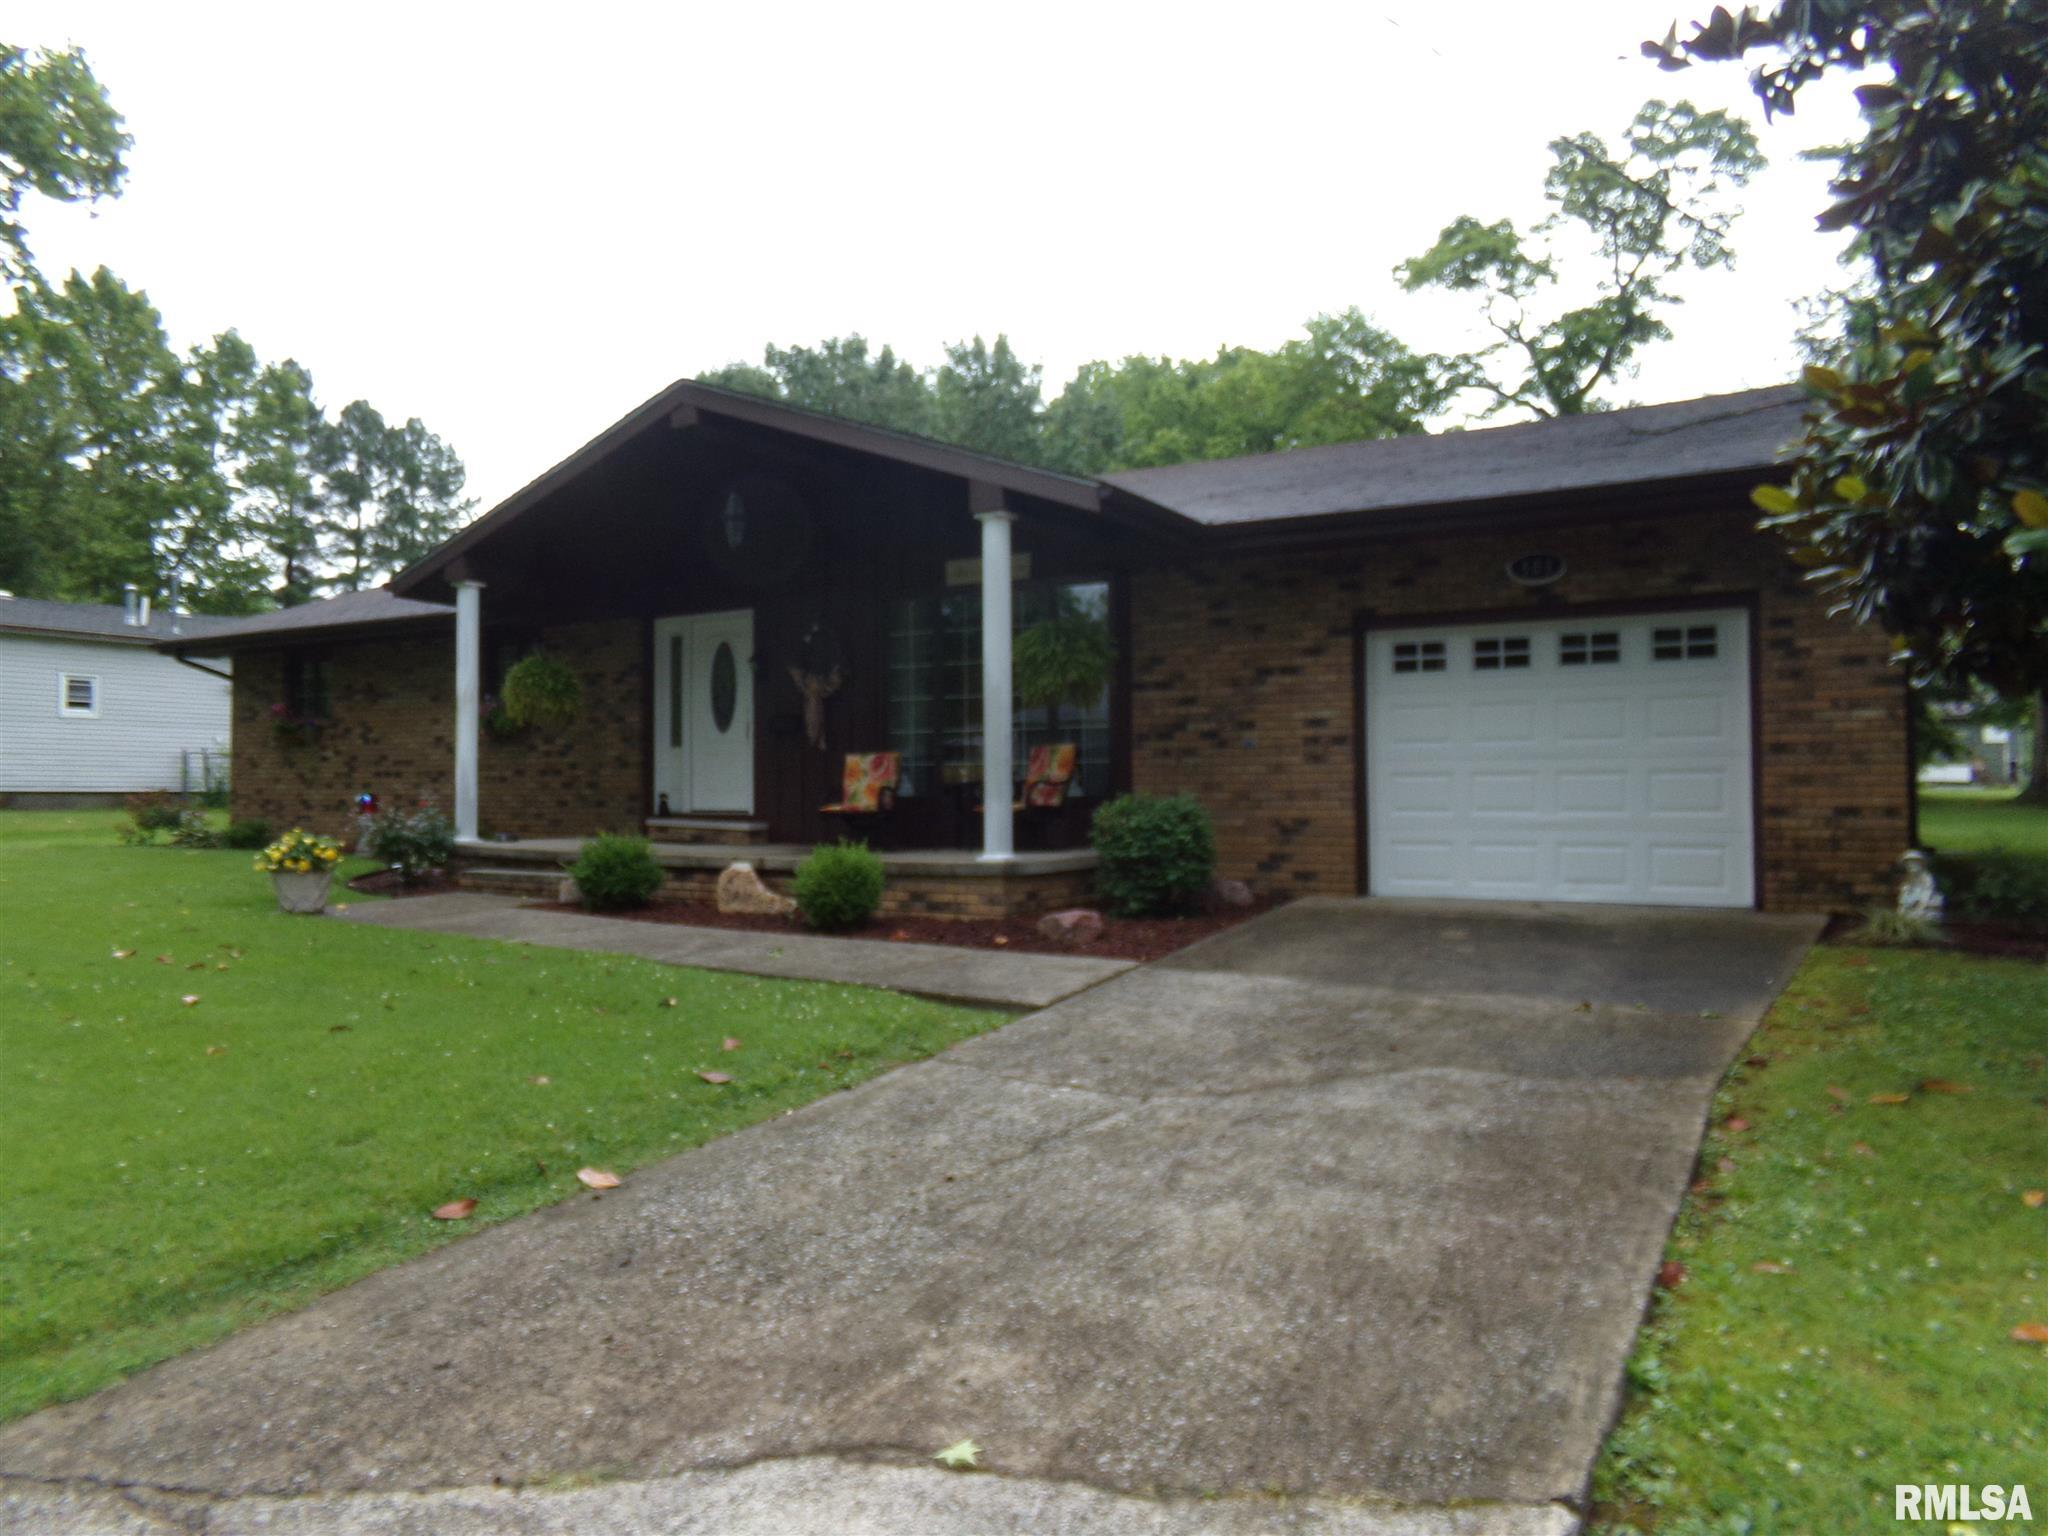 503 S RUSSELL Property Photo - West Frankfort, IL real estate listing